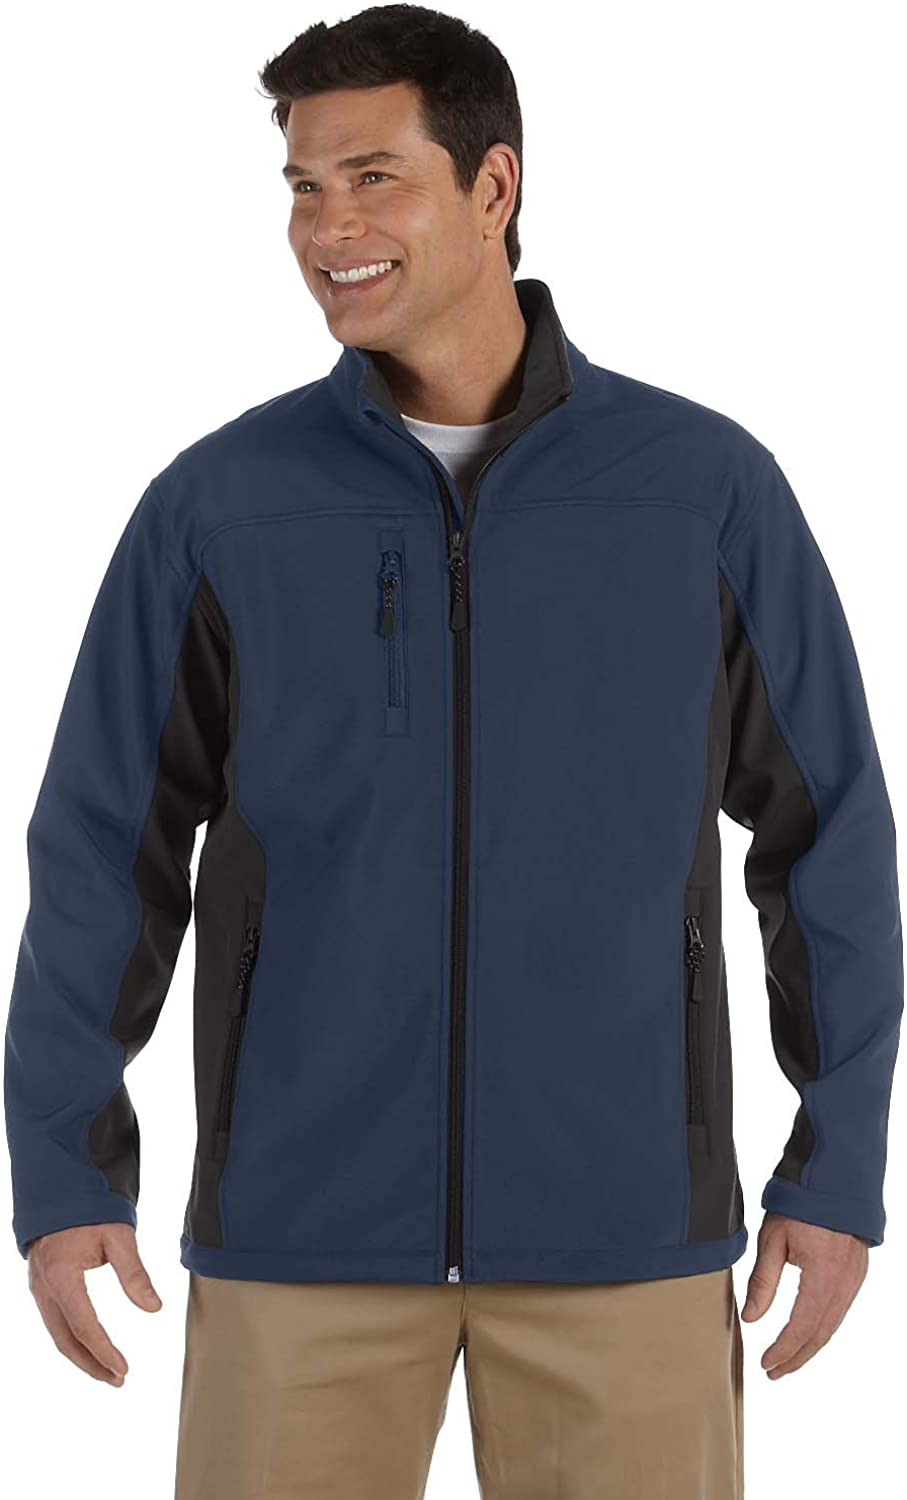 Max 50% OFF D and Jones Choice Men's Jacket Colorblock Shell Soft